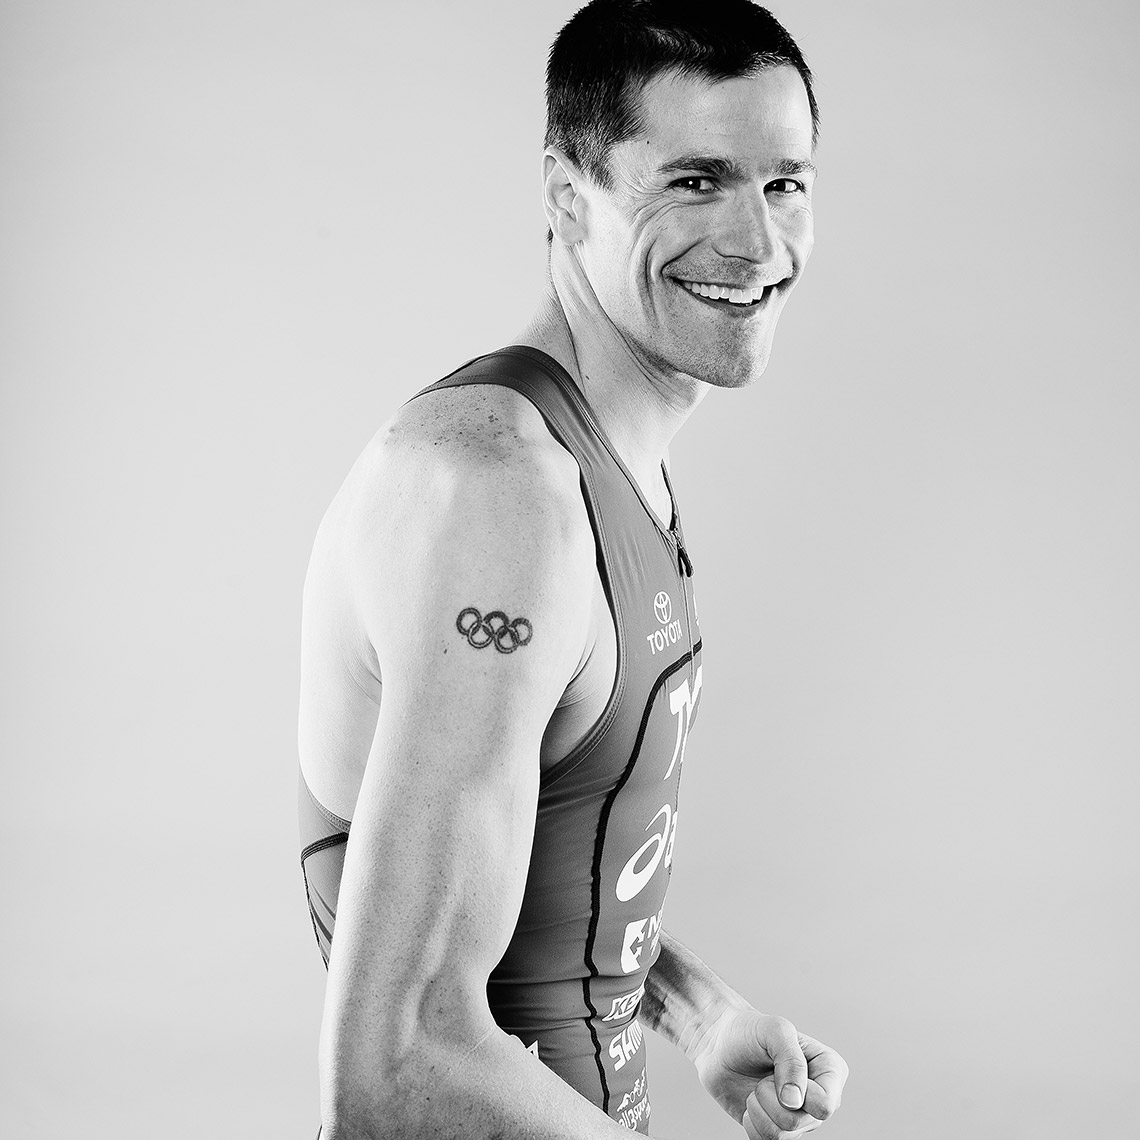 john-schnack-photography-commercial-sports-photographer-san-diego-los-angeles-fuji-bikes-triathlete-andy-potts-photo-shoot-07